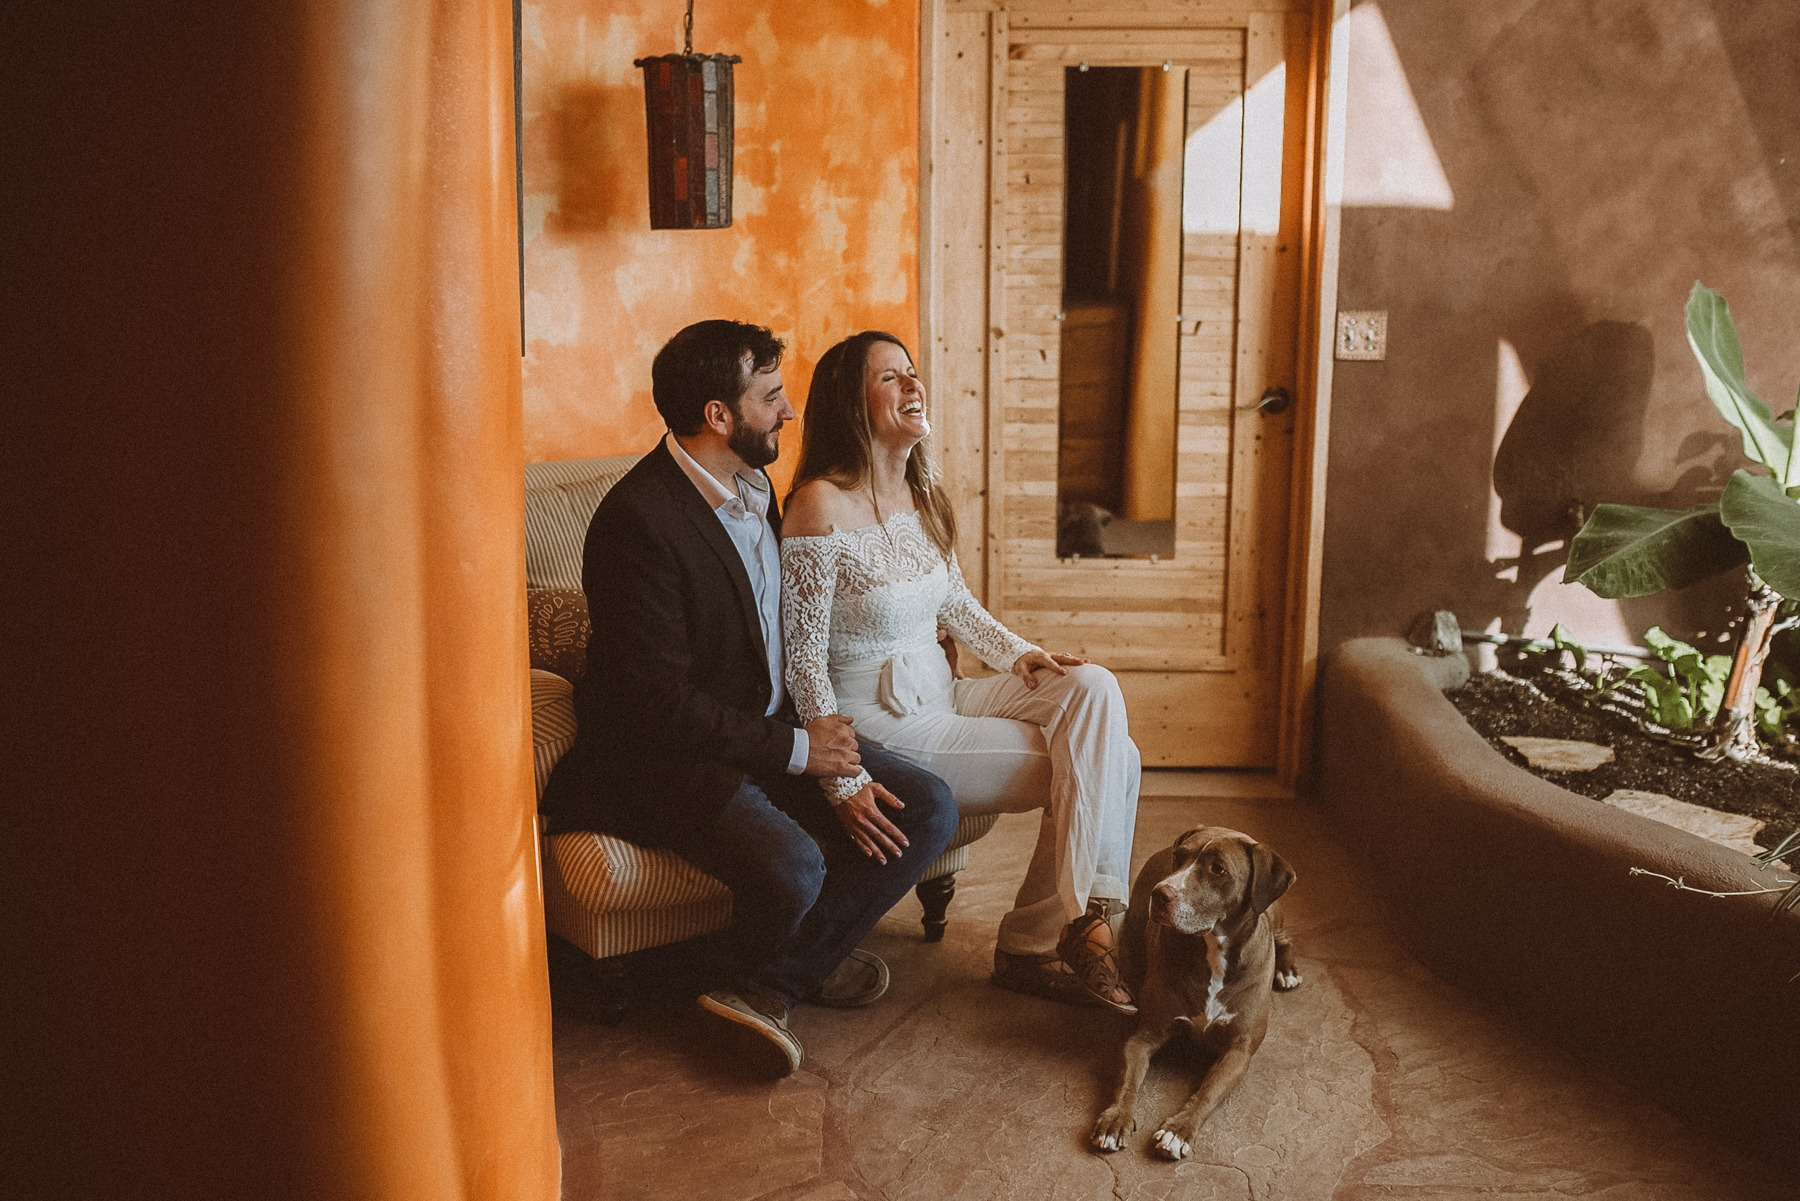 Earthship Elopement | Elope in an Earthship | Earthship wedding | Taos wedding | Taos elopement | Mountain elopement | Elope in Taos | Ashley Joyce Photography 2020